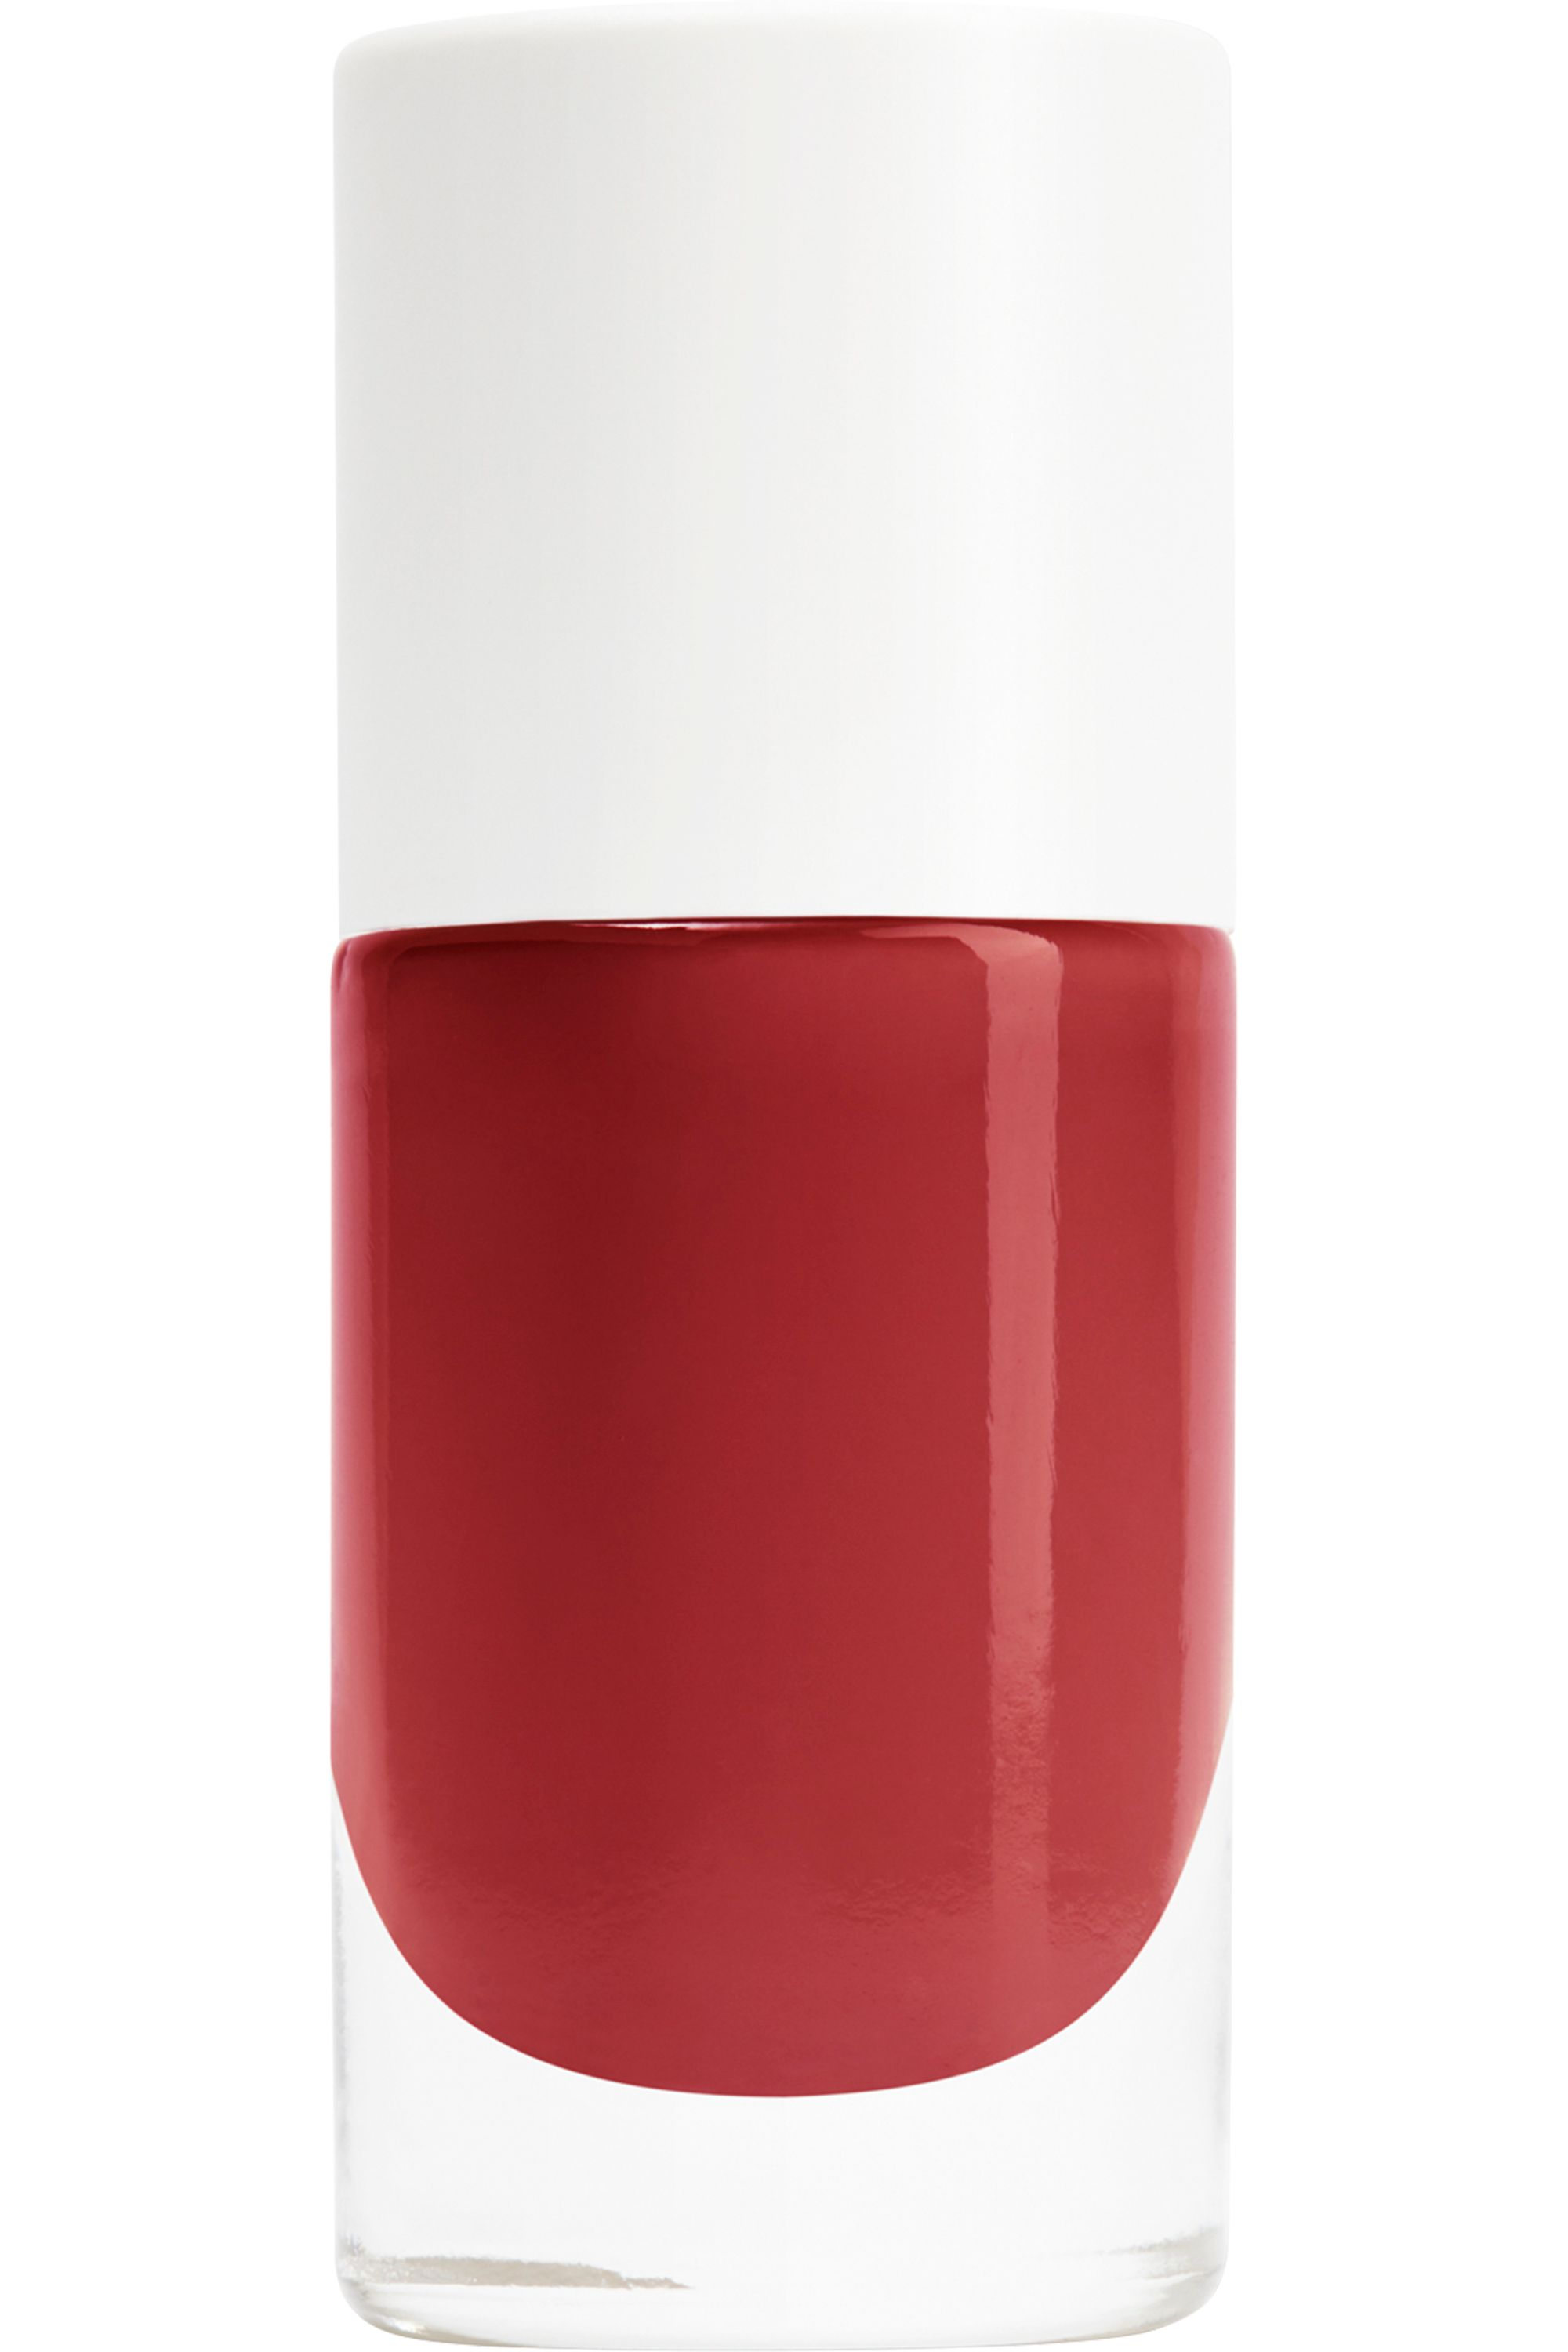 Blissim : Nailmatic - Vernis à ongles Pure Color - Pure Color Anouk